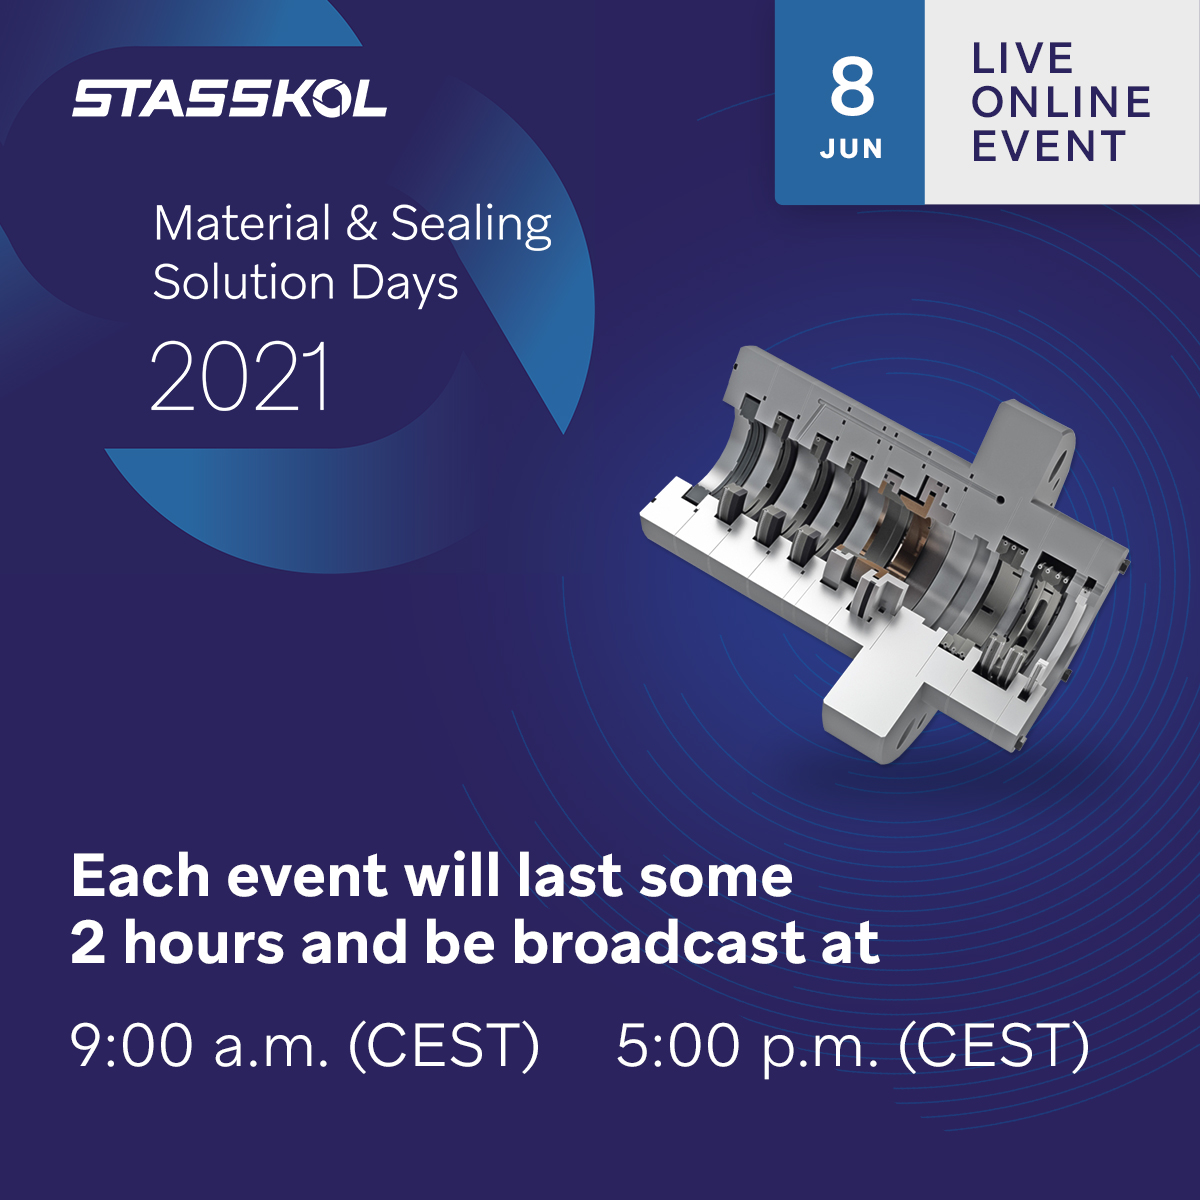 June 8th - The Art of Sealing - Low emission packing solutions for recips